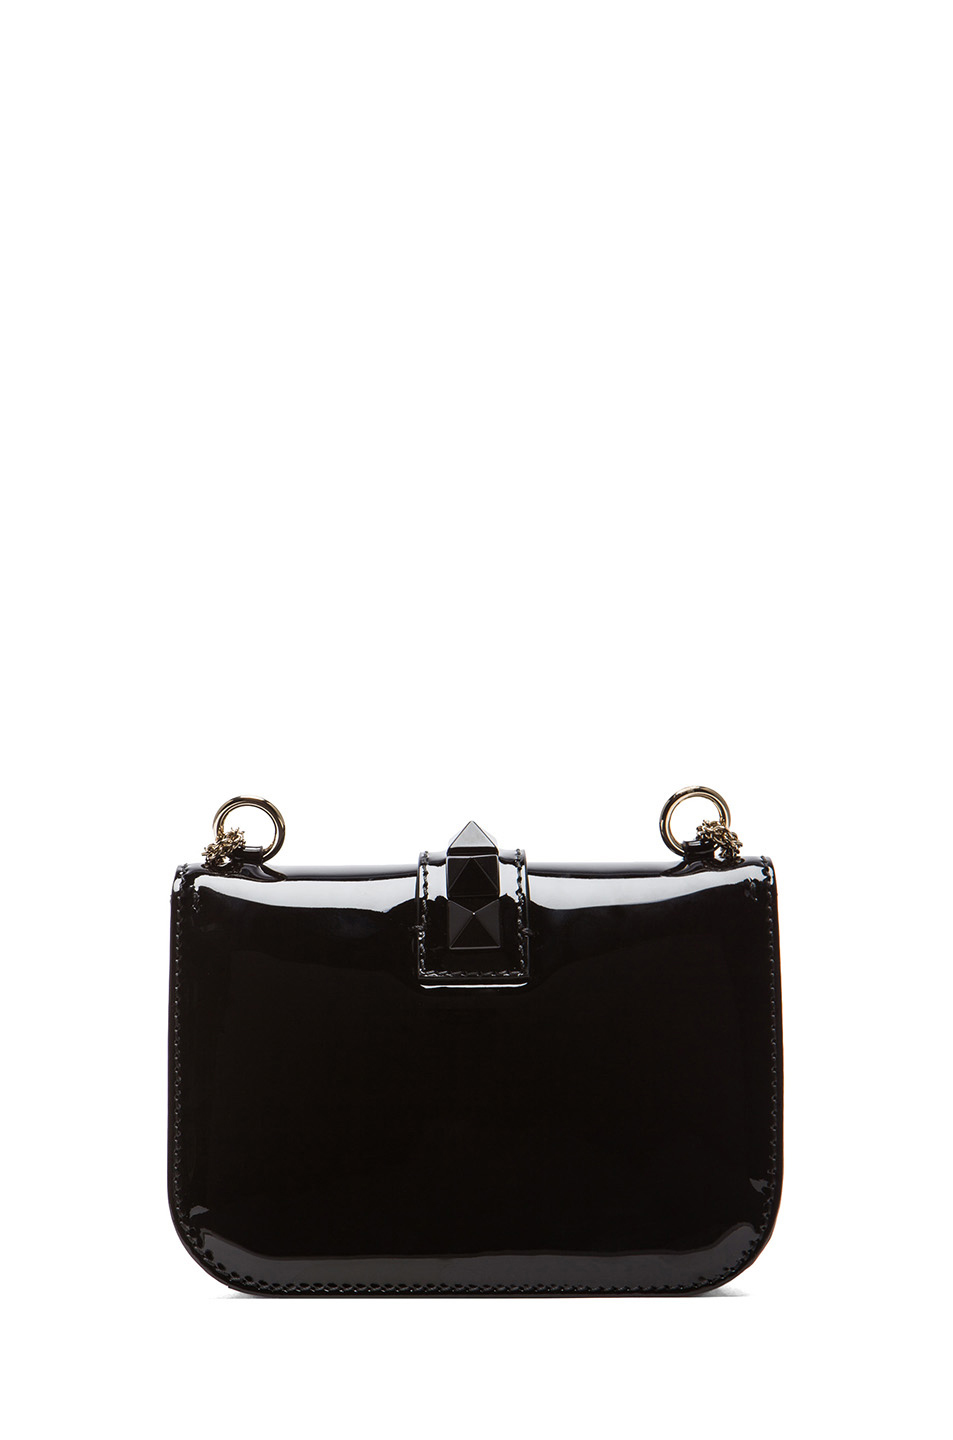 Valentino | Small Punkouture Lock Flap Bag in Black